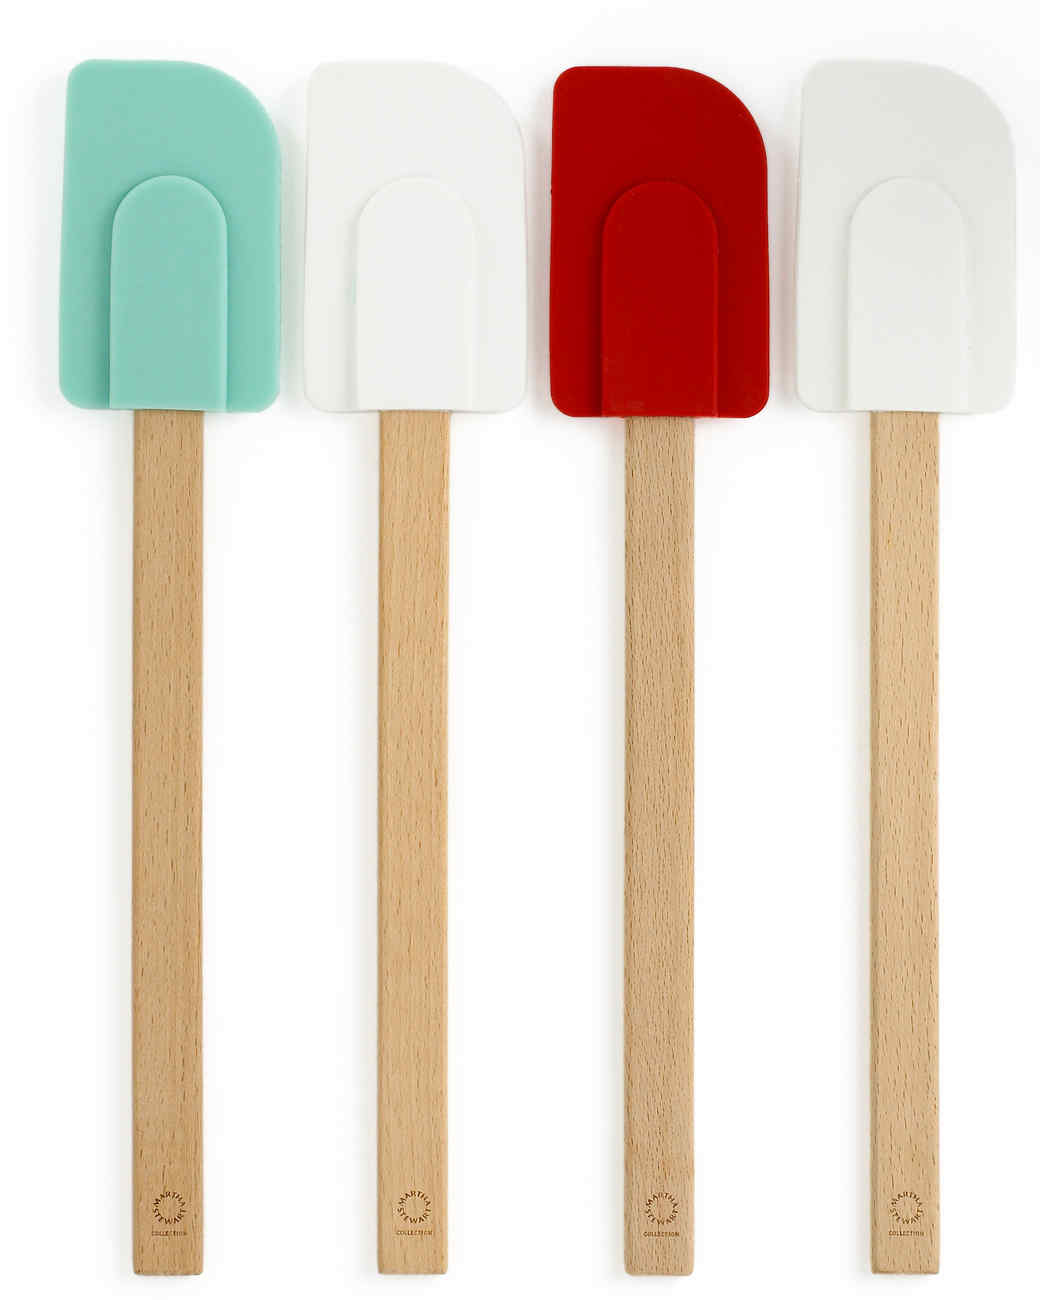 msmacys-recipes-spatulas-0515.jpg